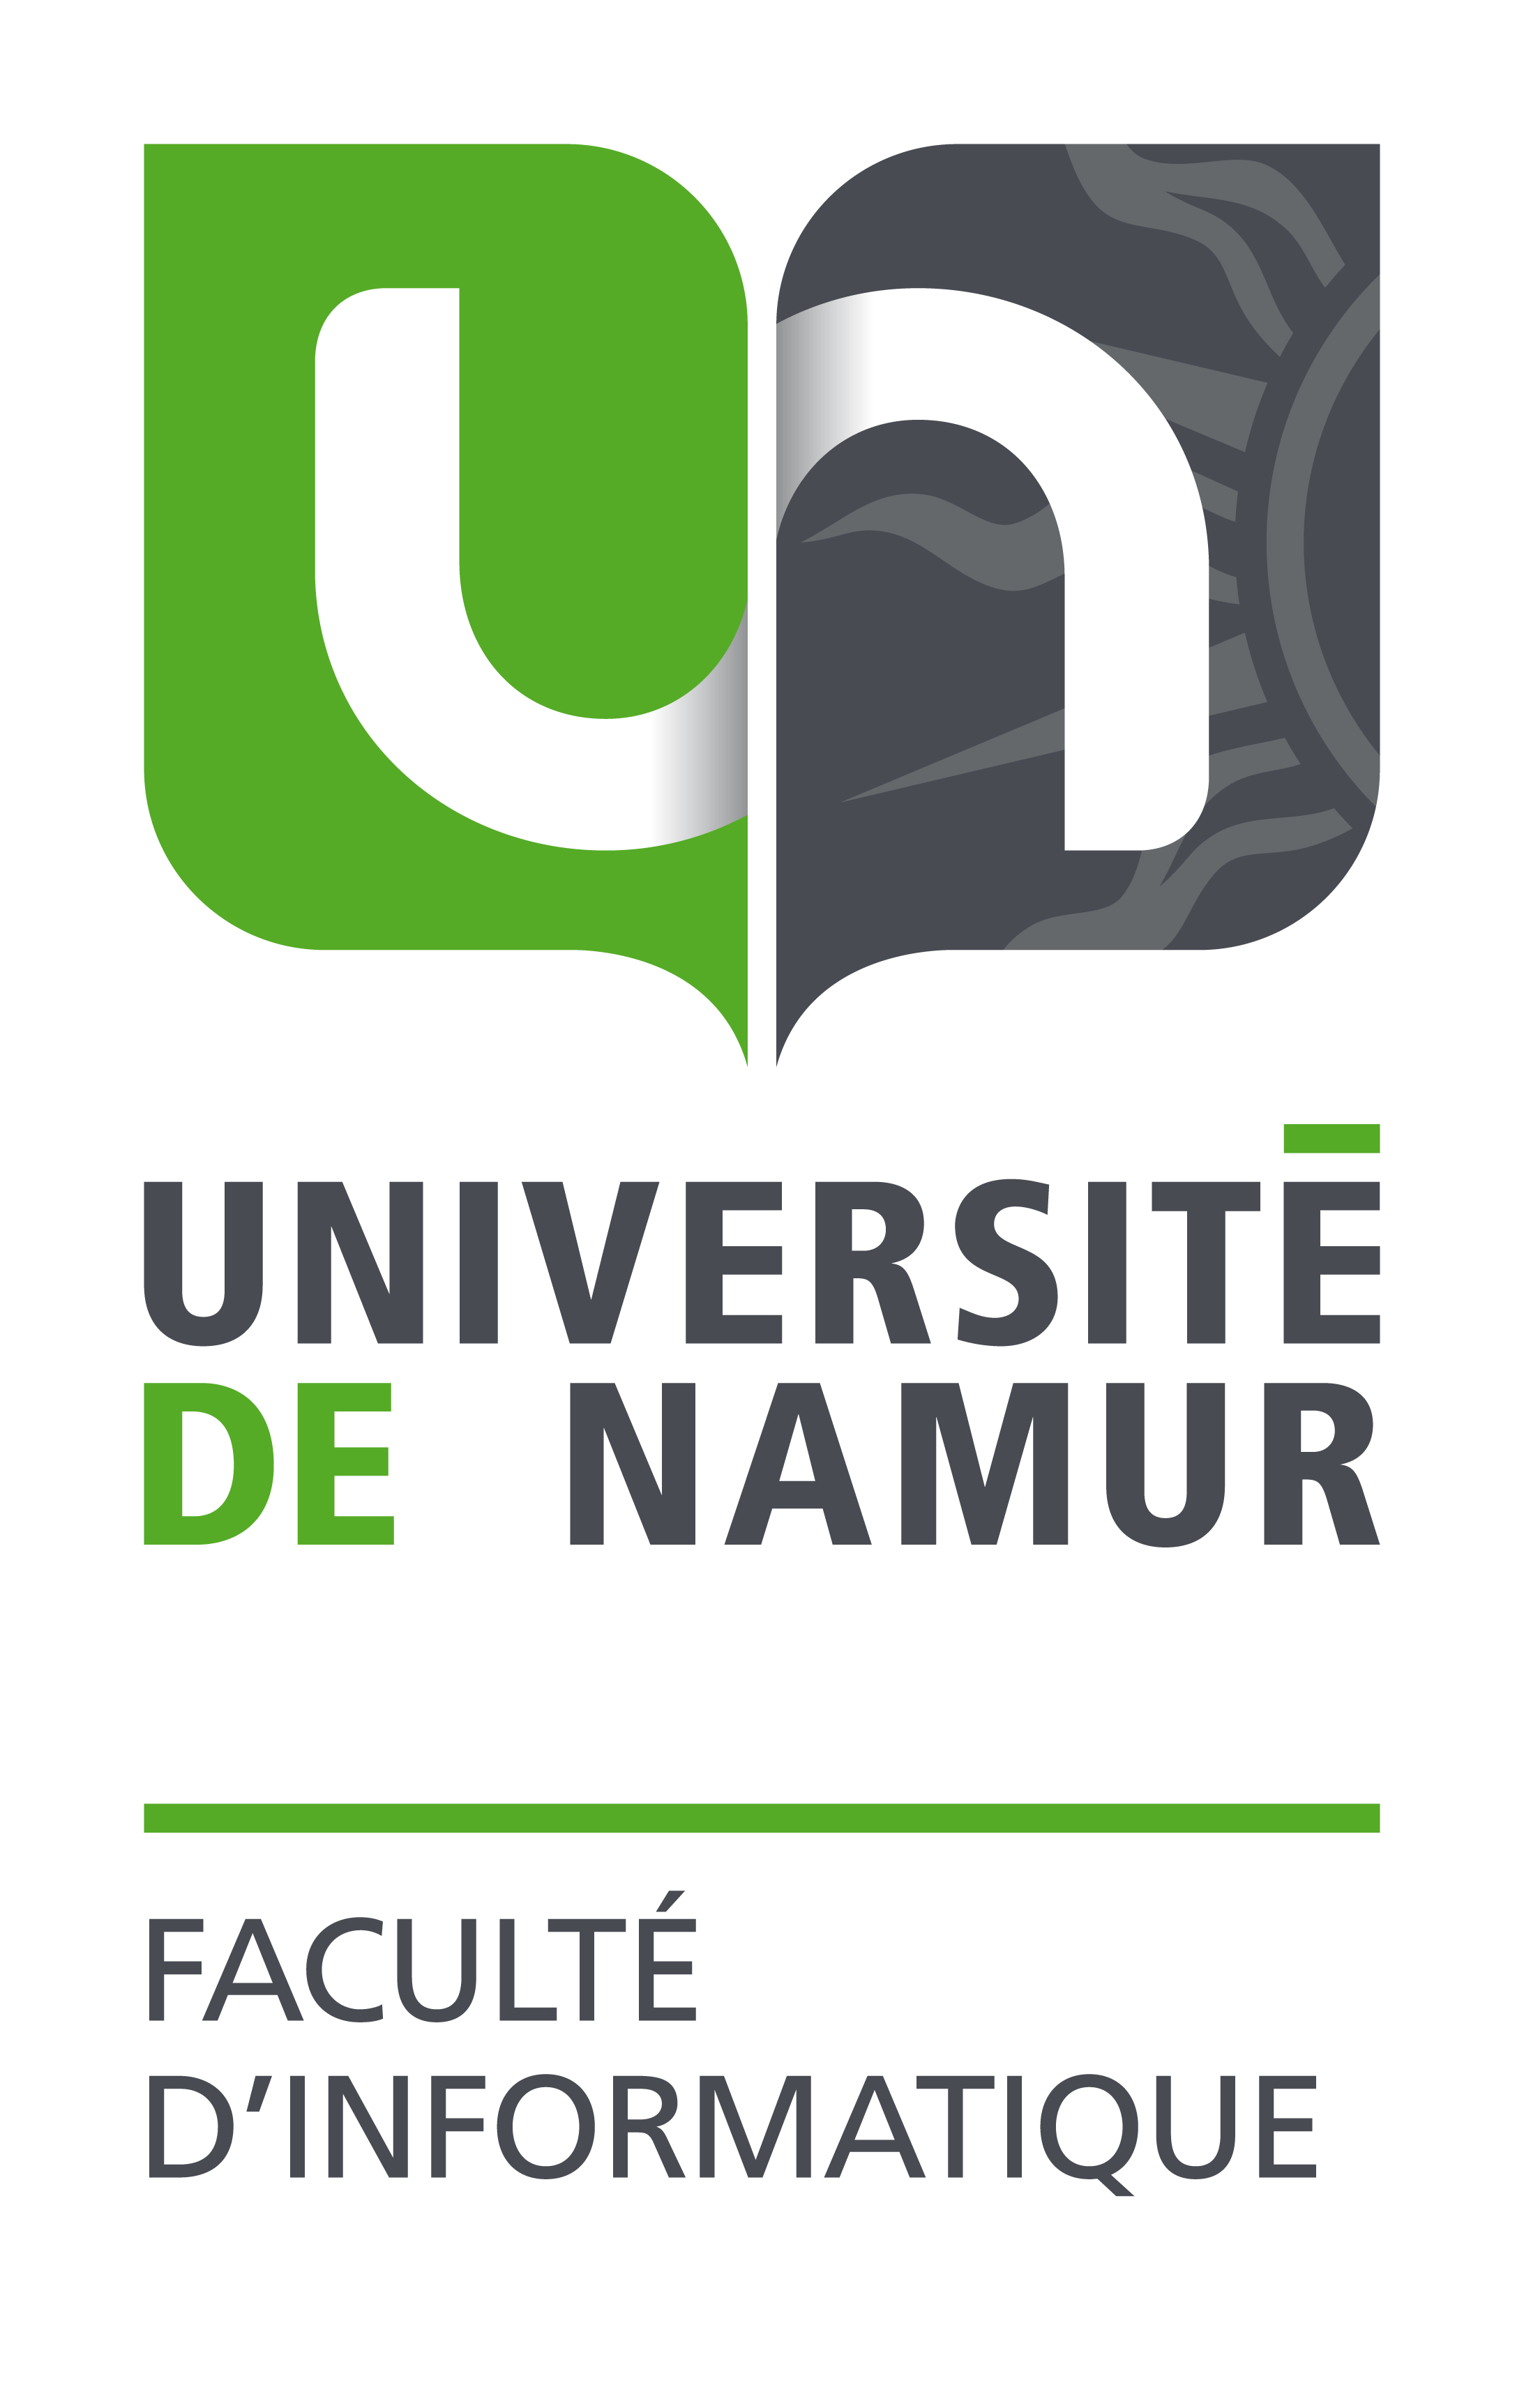 Faculty of Computer Sciences (logo)